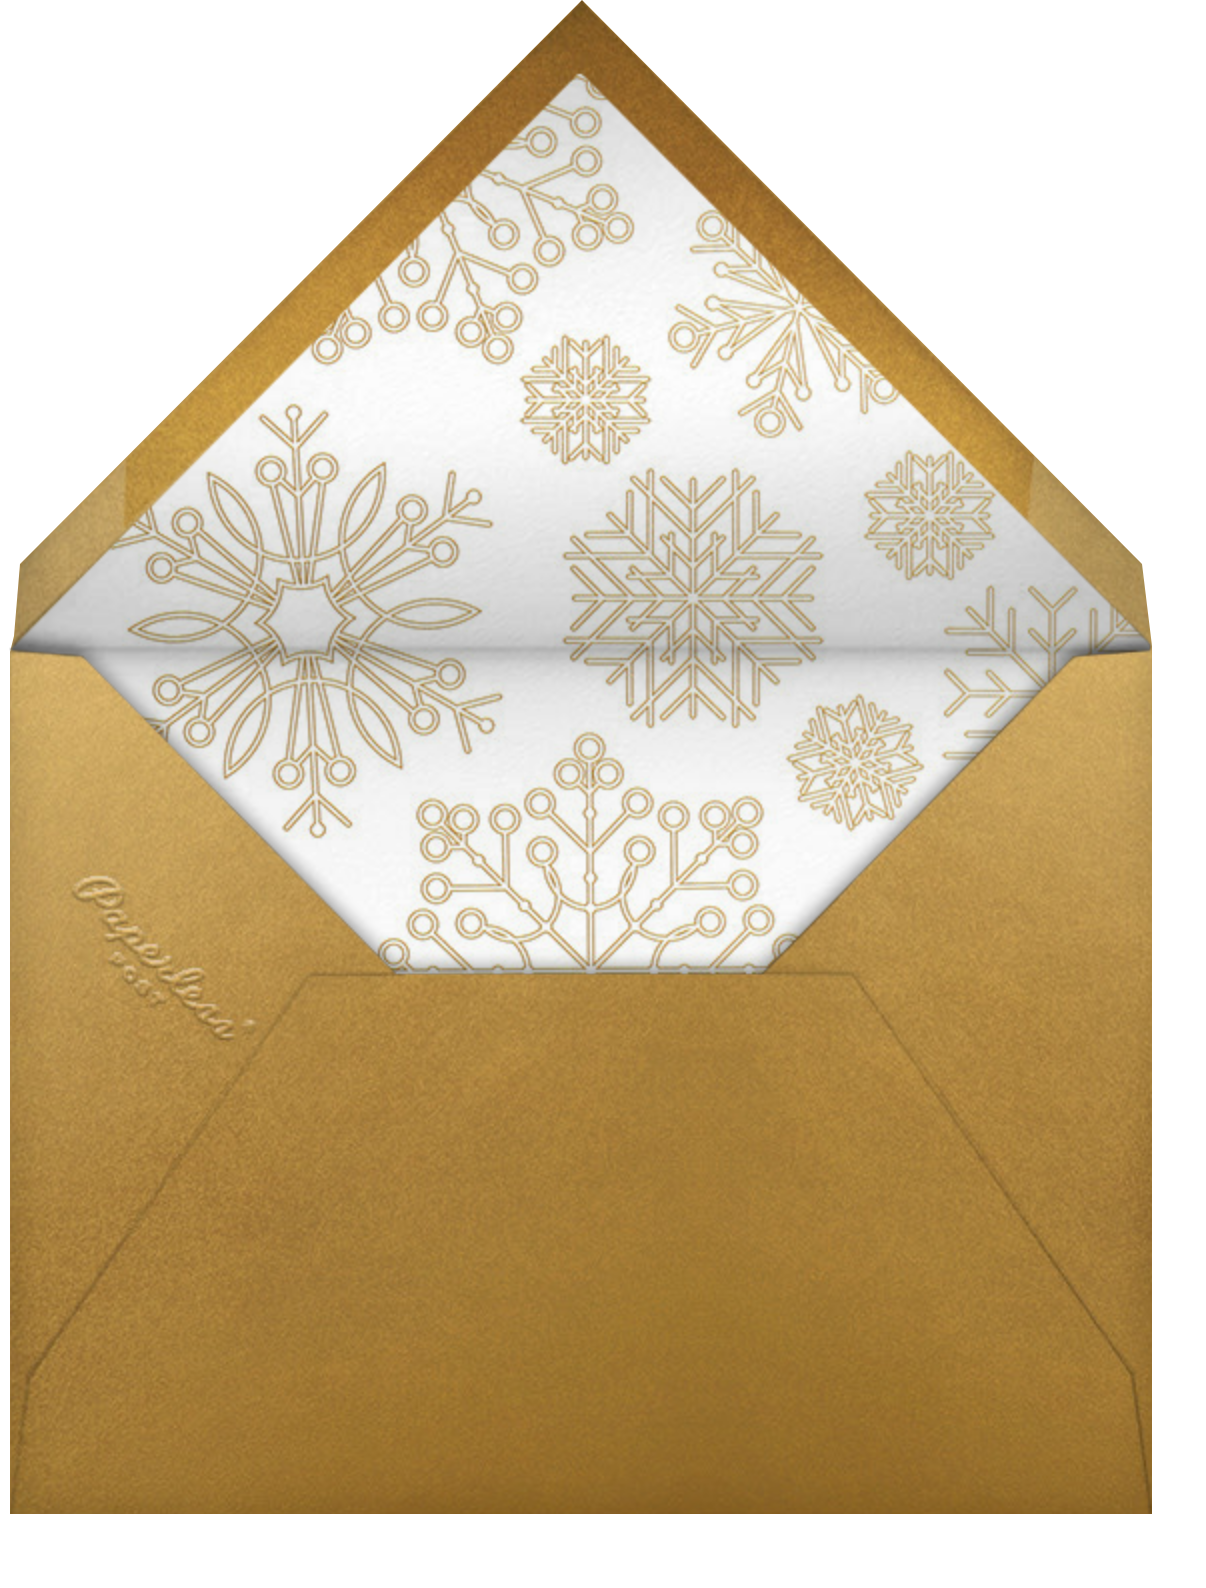 Etched Snowflakes - Cream - Paperless Post - Company holiday cards - envelope back